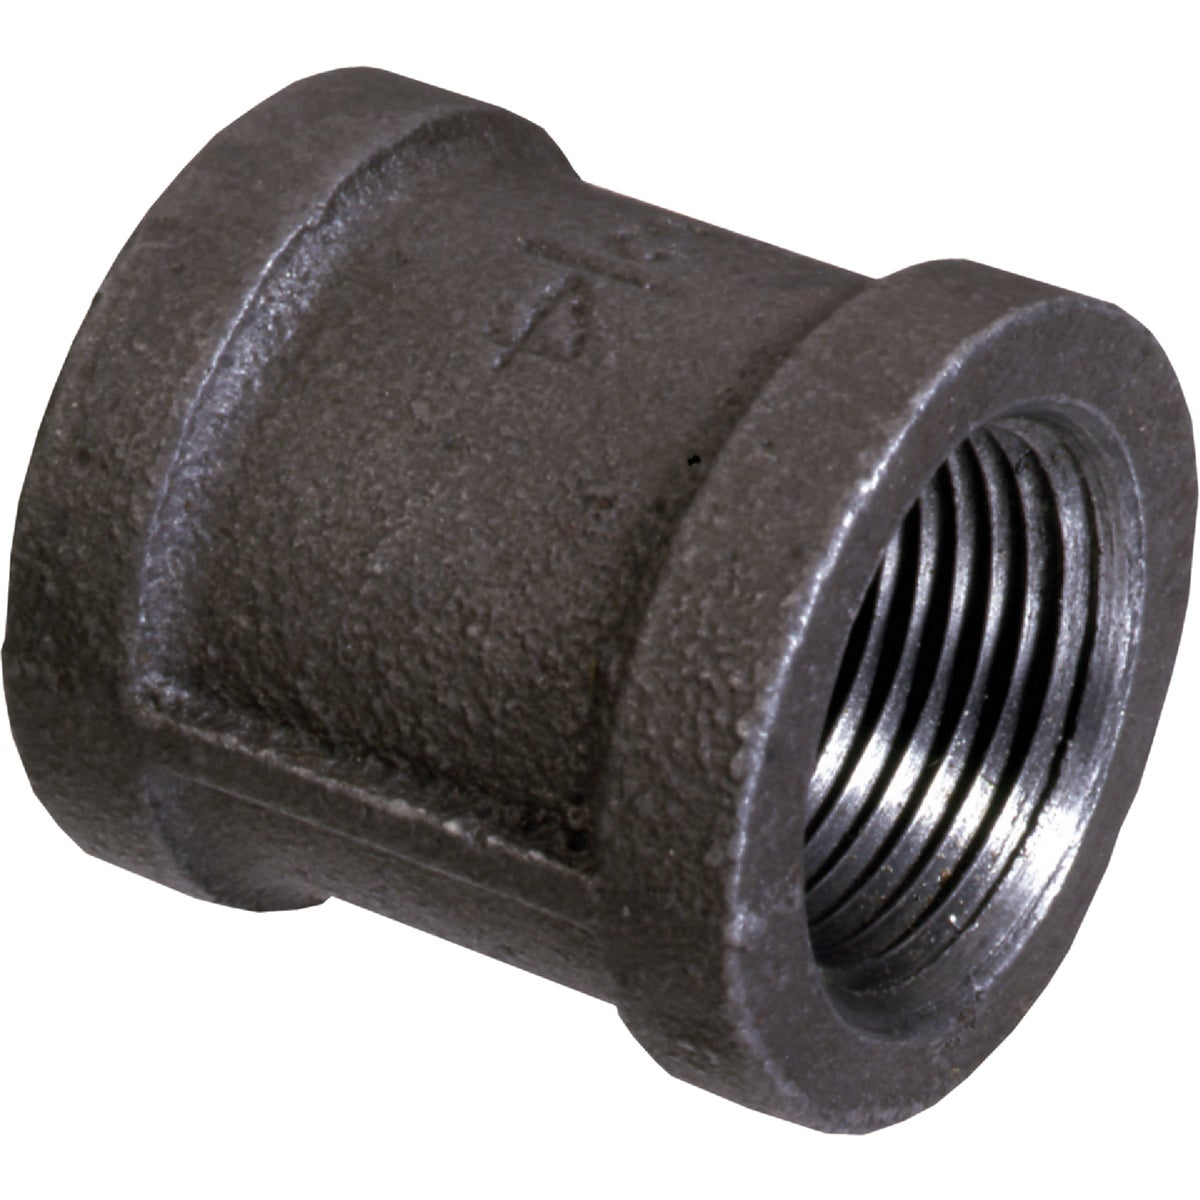 "3/4"" BLACK COUPLING - 521-204BG by Mueller B K"